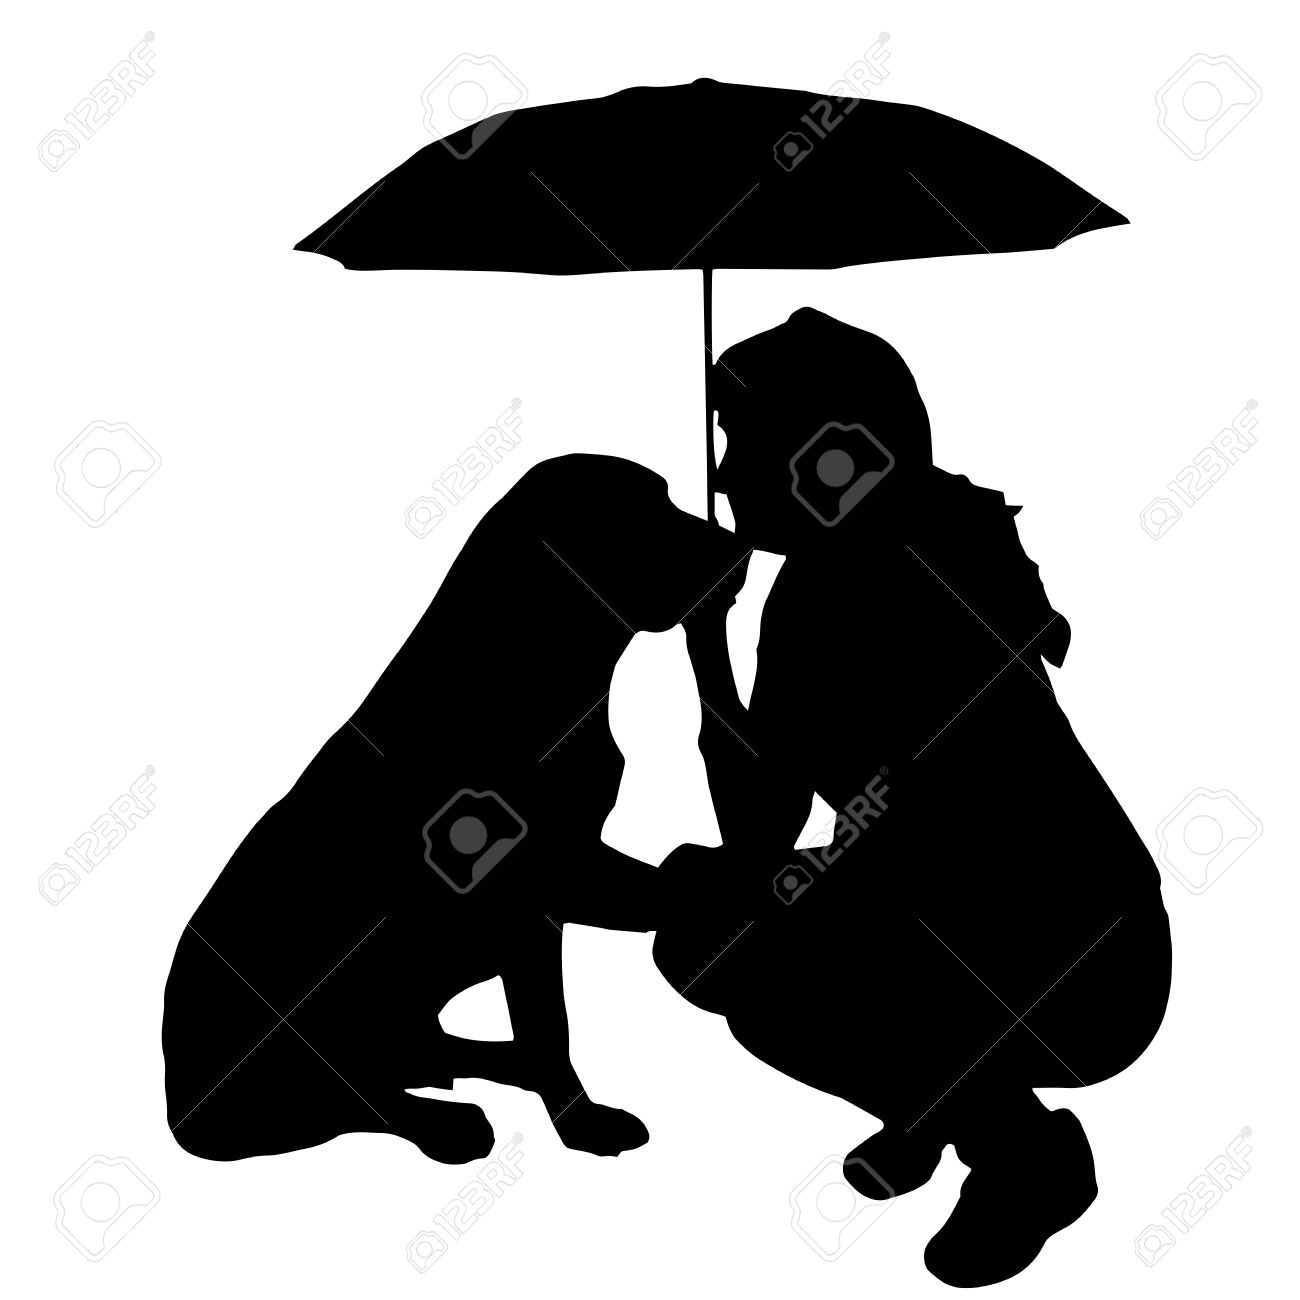 Girl Dancing In The Rain With Umbrella Silhouette